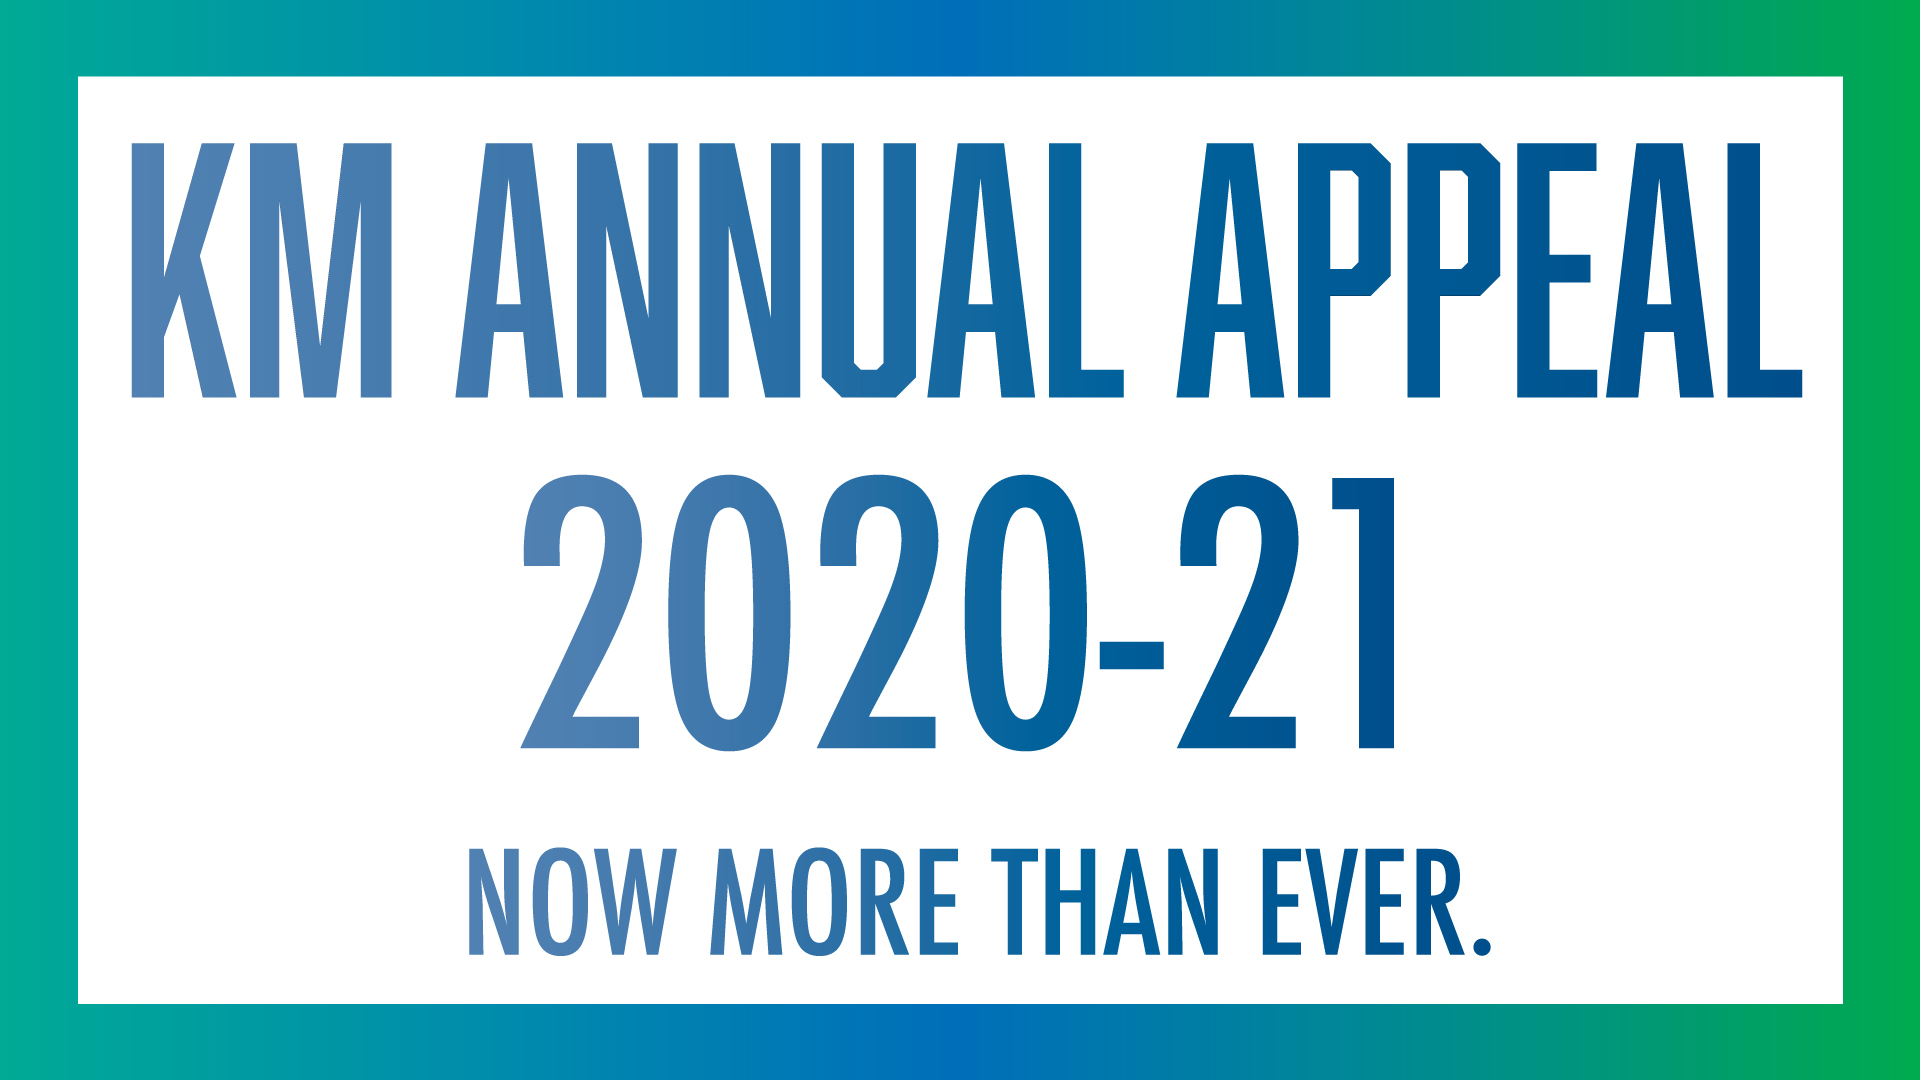 KM ANNUAL APPEAL 2020-21